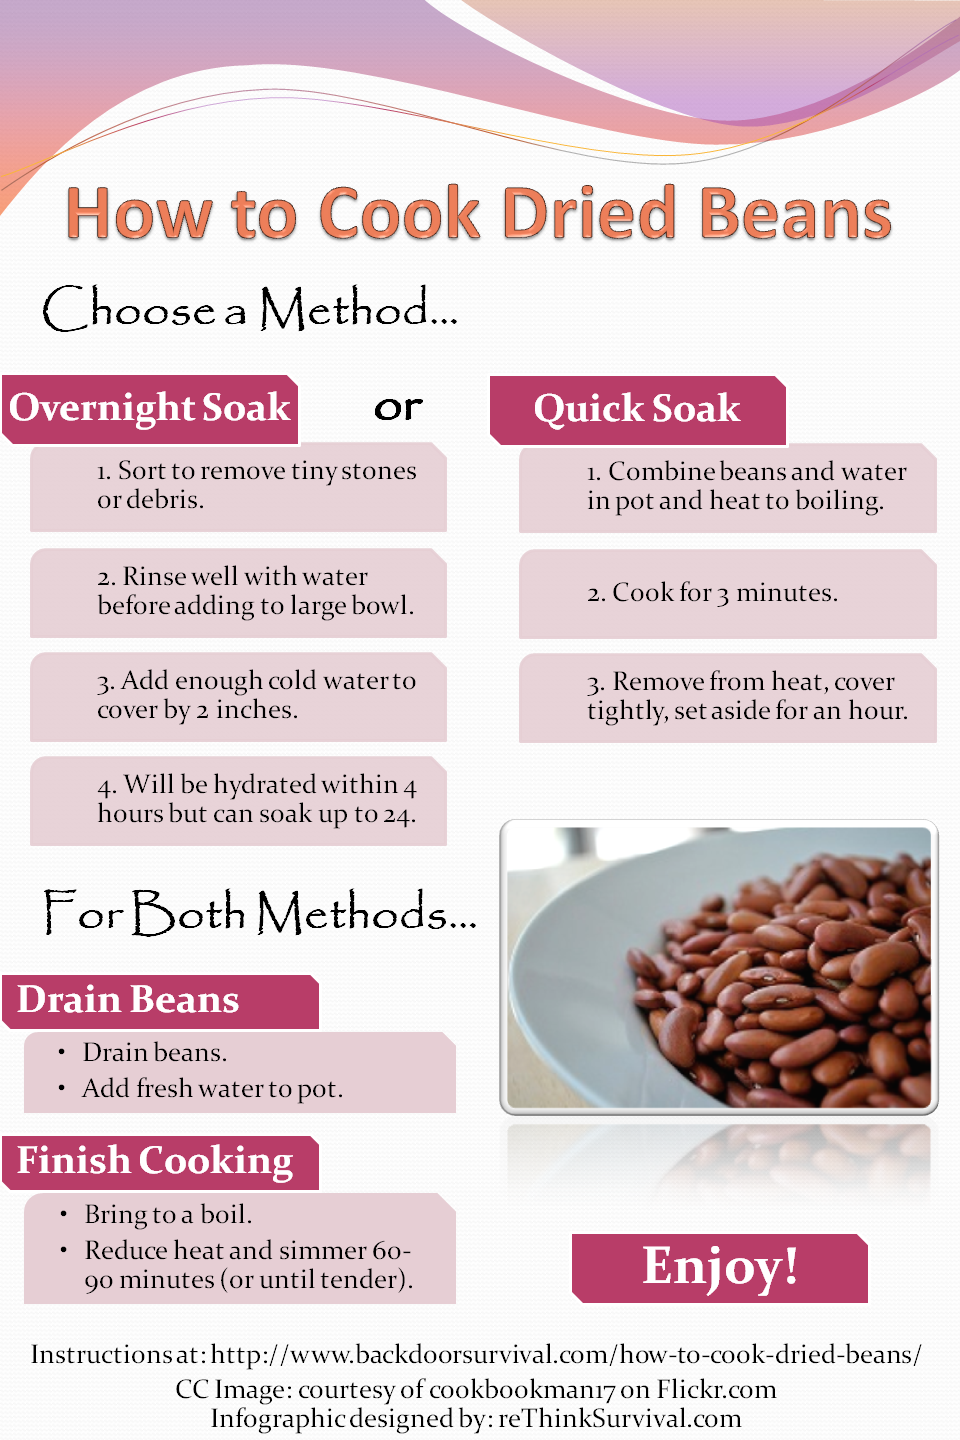 cook-dried-beans-infographic